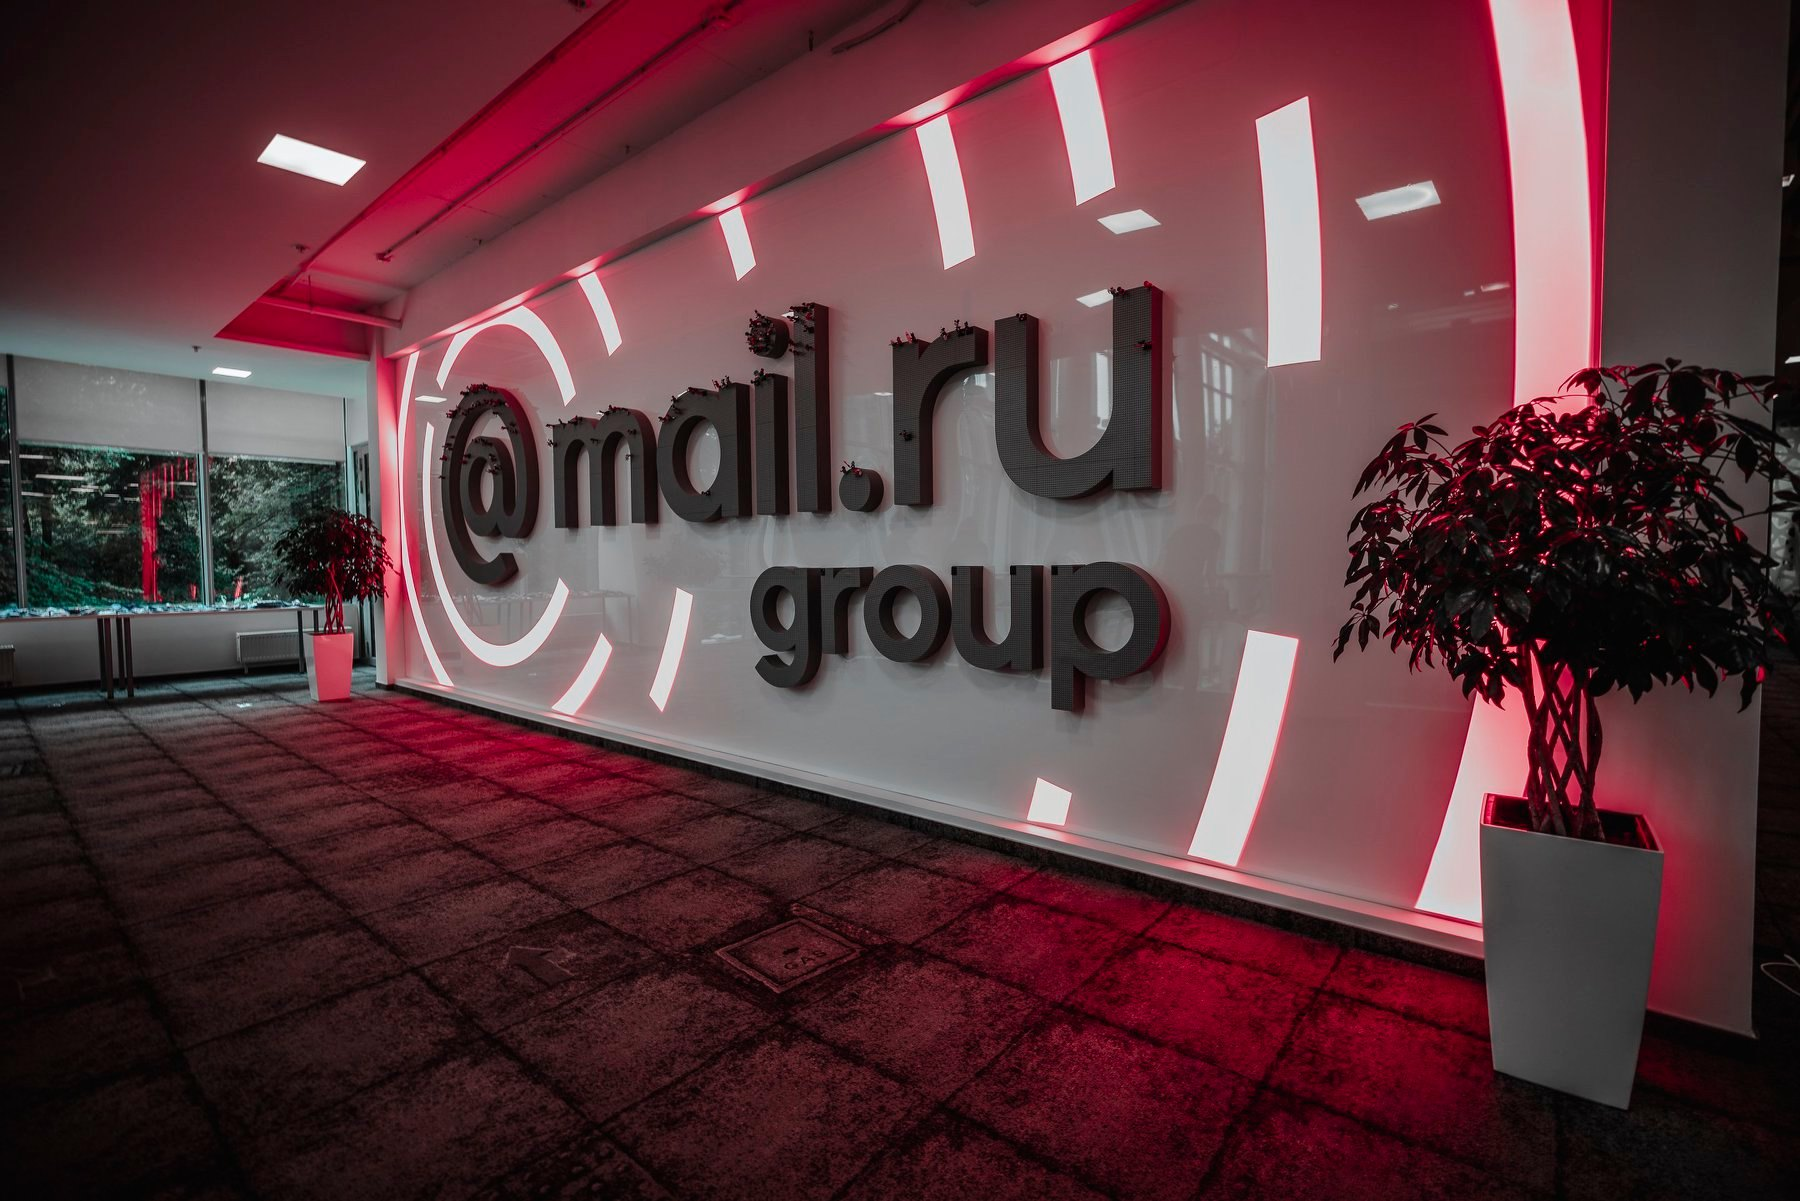 Коммерсант: Mail.ru Group запустит сервис облачного гейминга